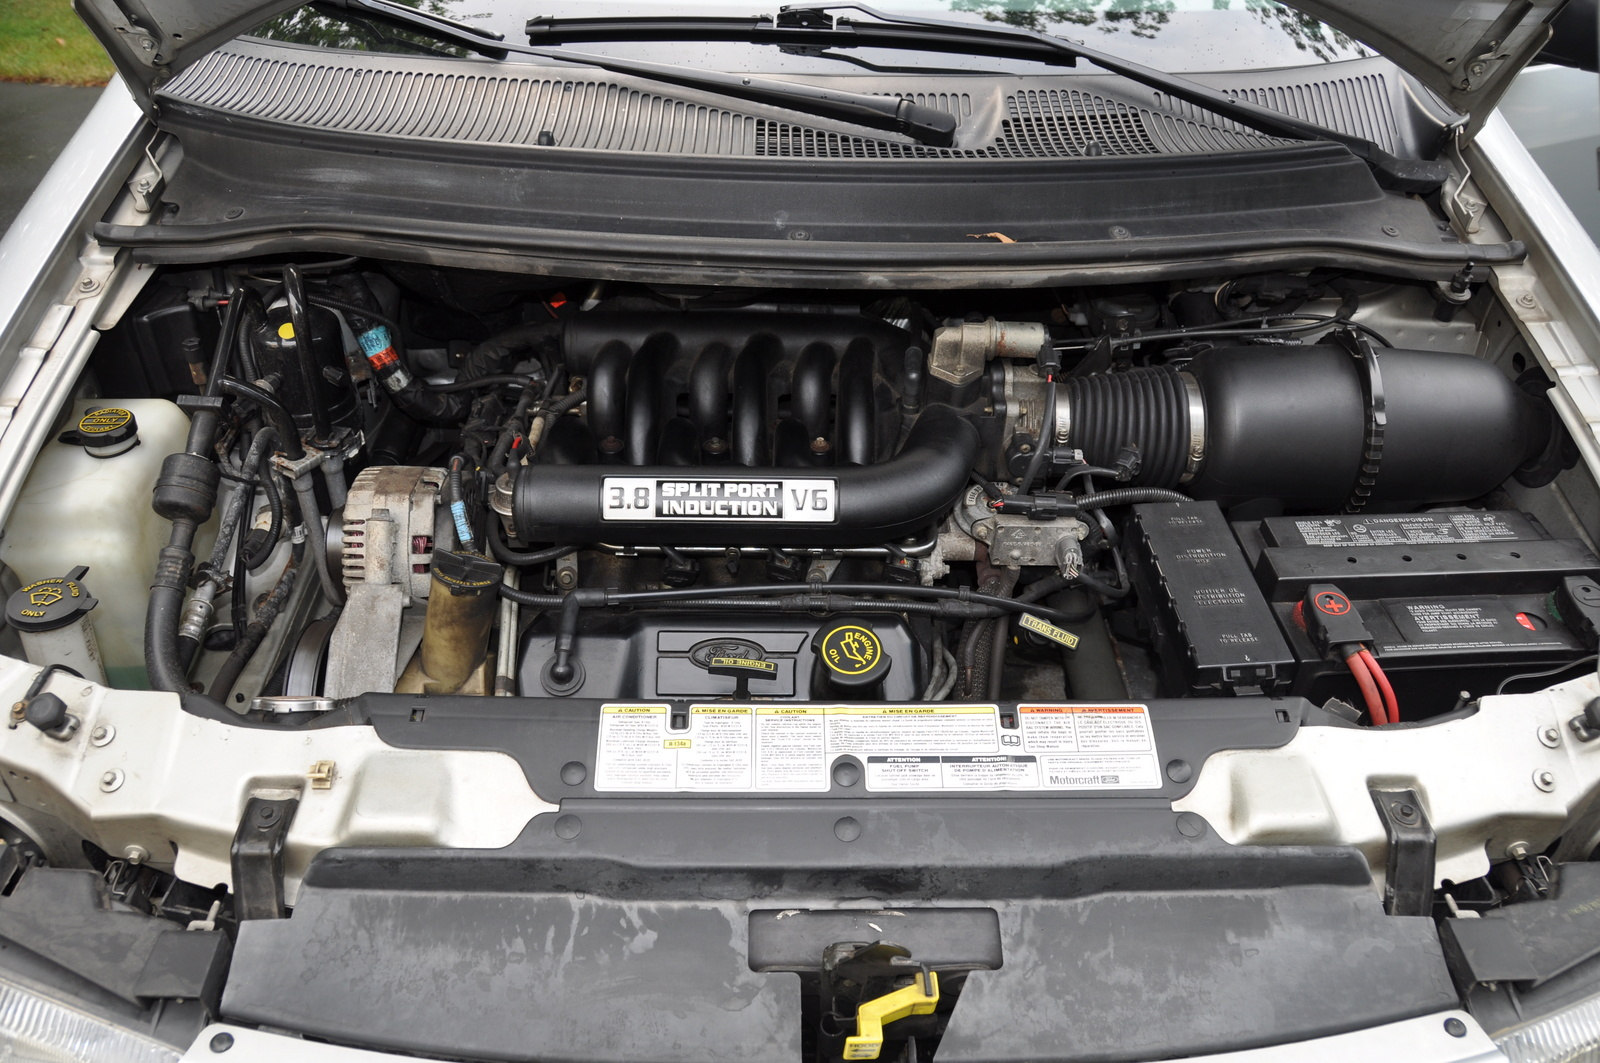 2001 Windstar Engine Diagram Ford A Pictures Information And Specs Auto 1600x1063